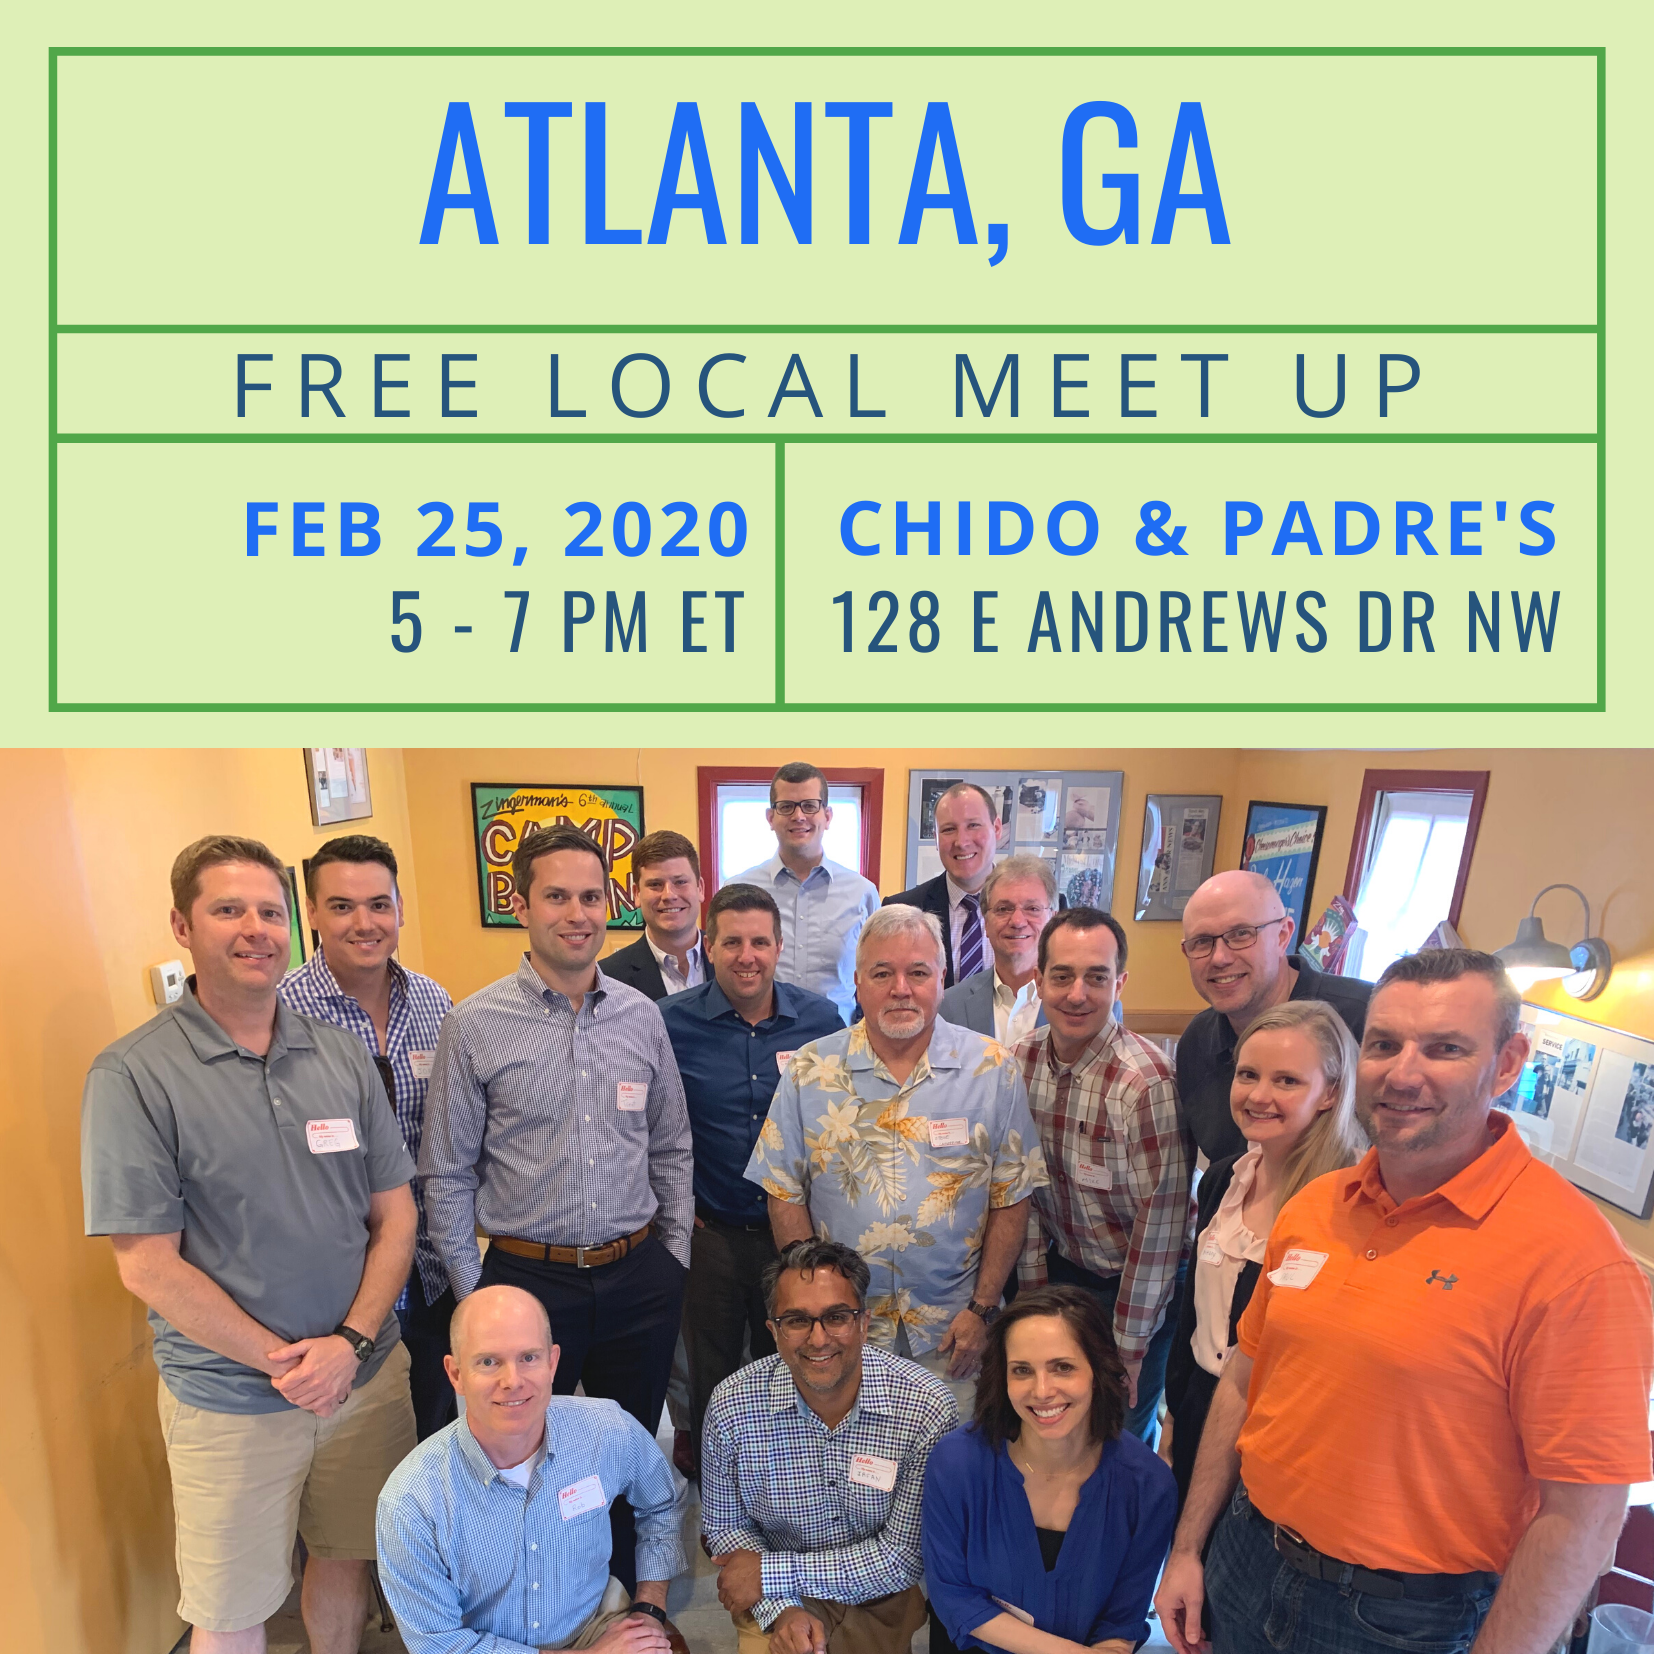 Free Local Meet-Up in Atlanta on Wednesday, February 26